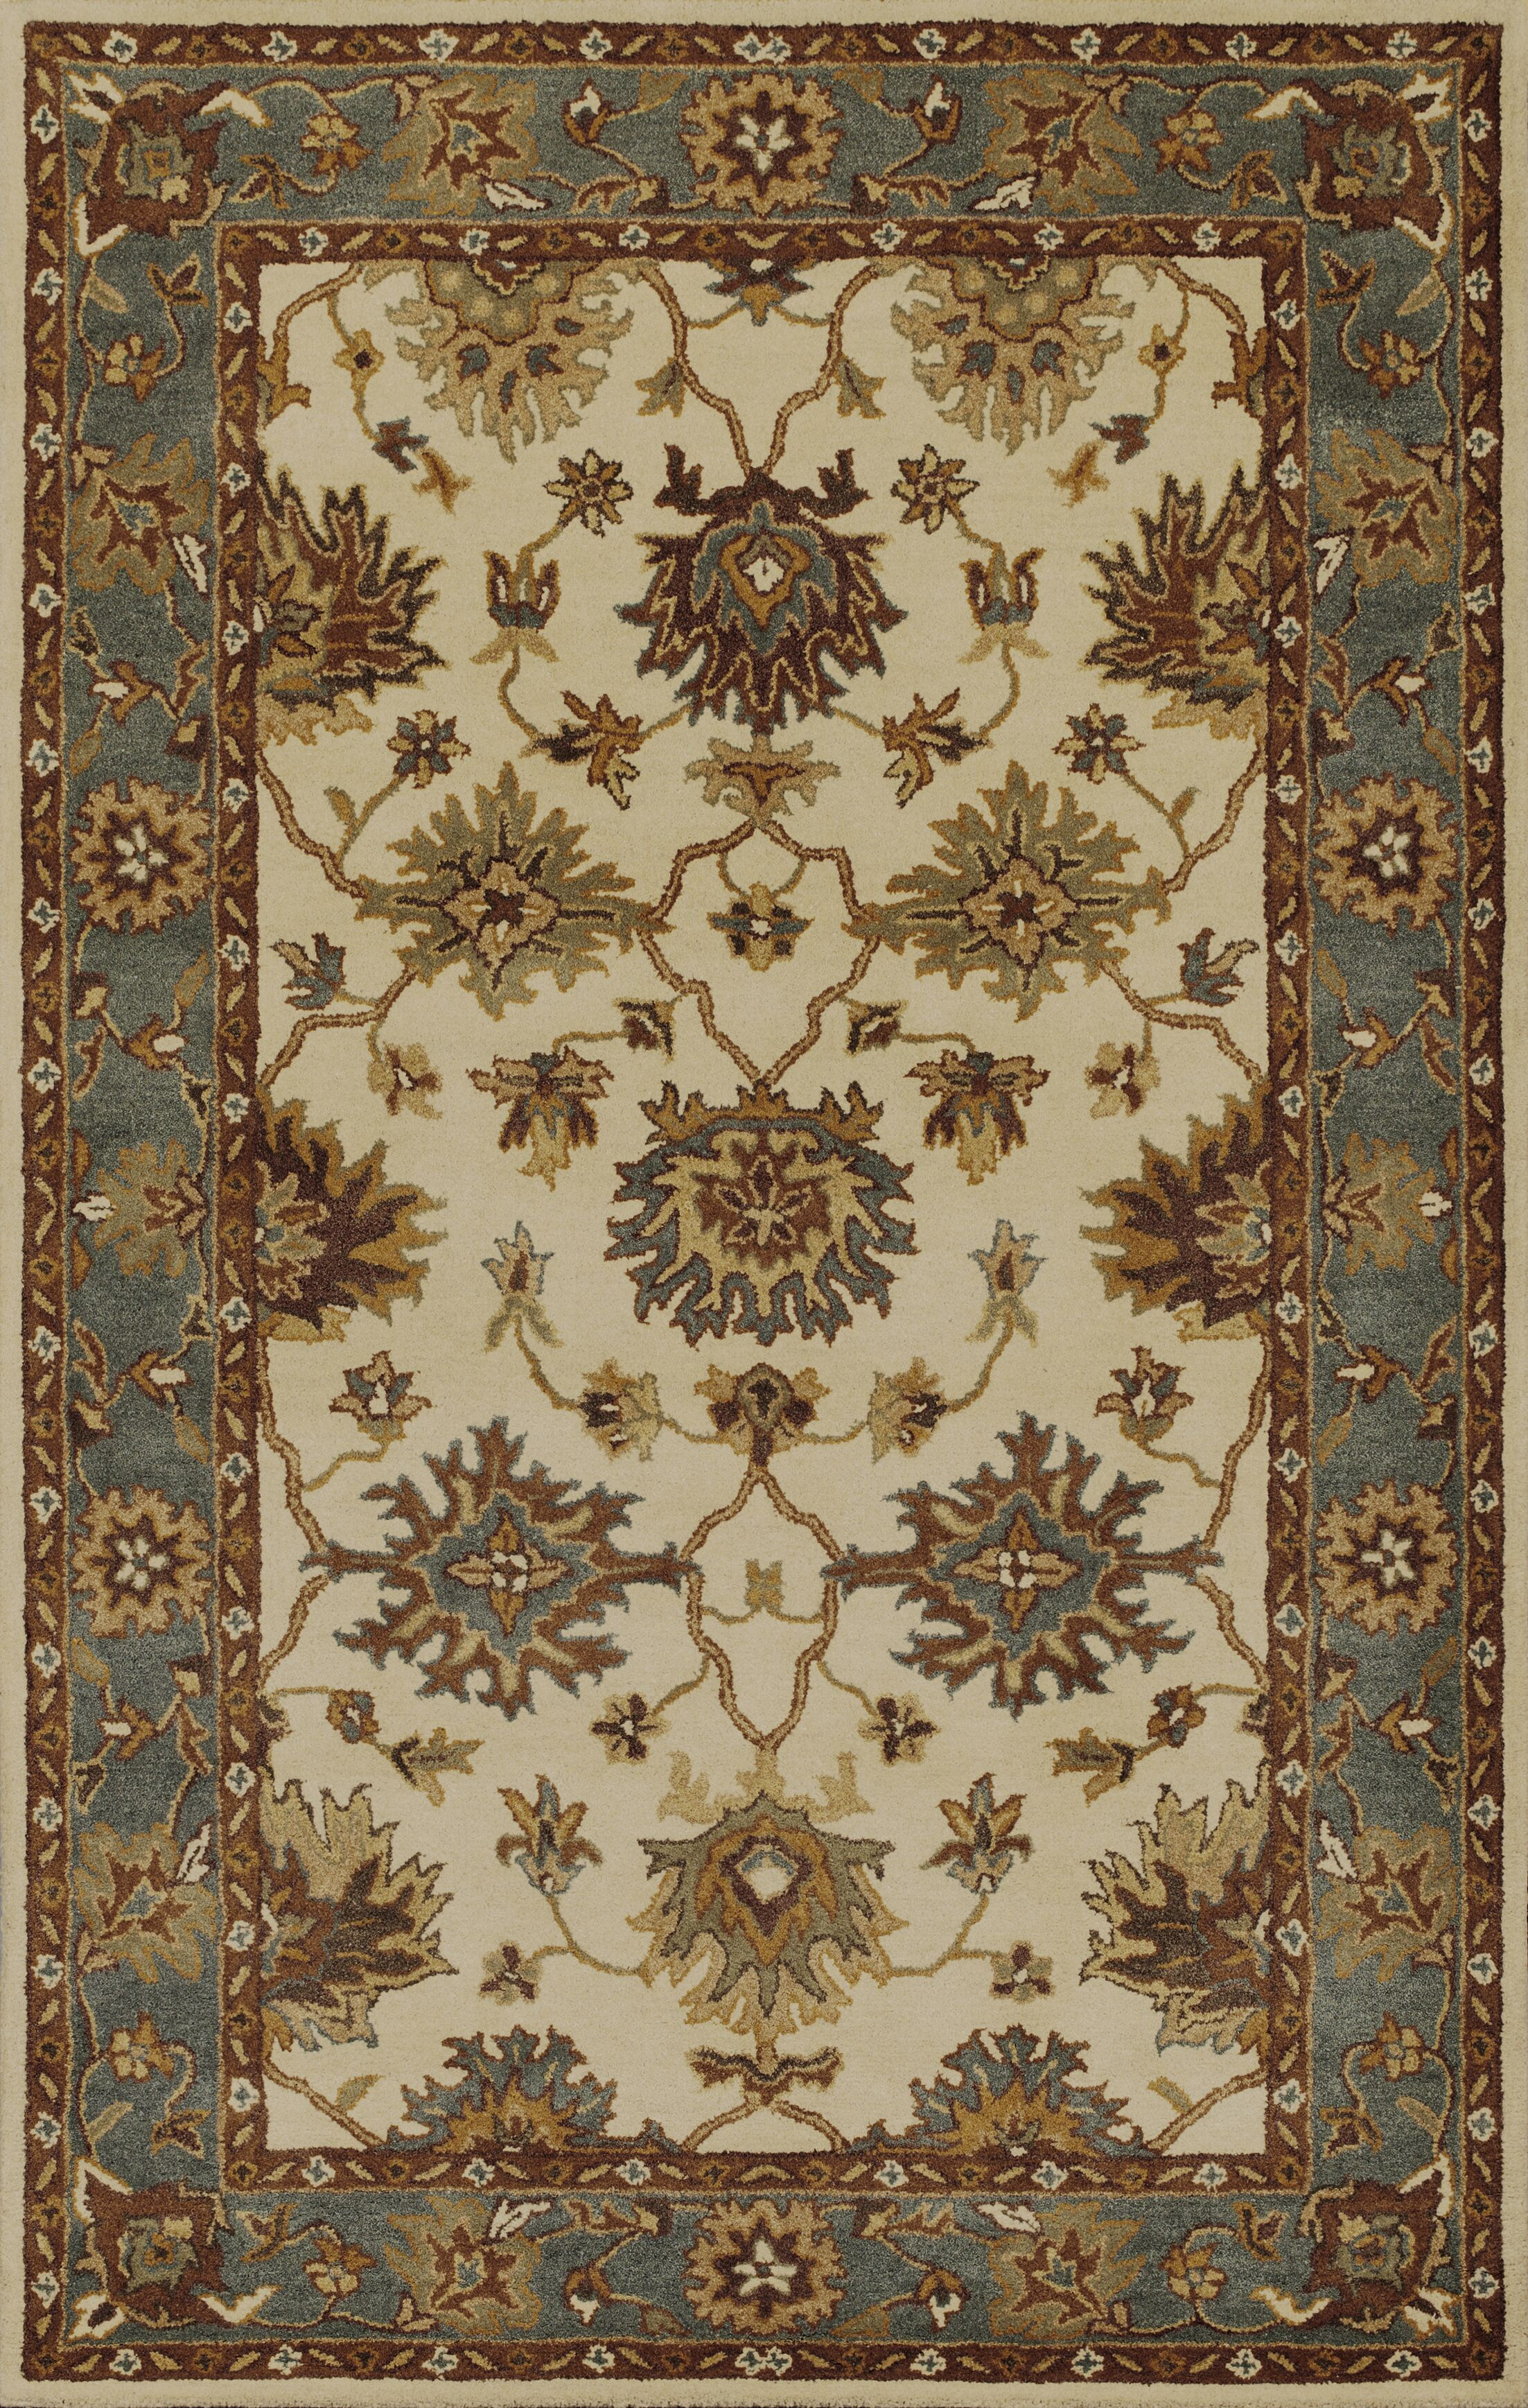 Auer Syria Area Rug Rug Size: Runner 2'3